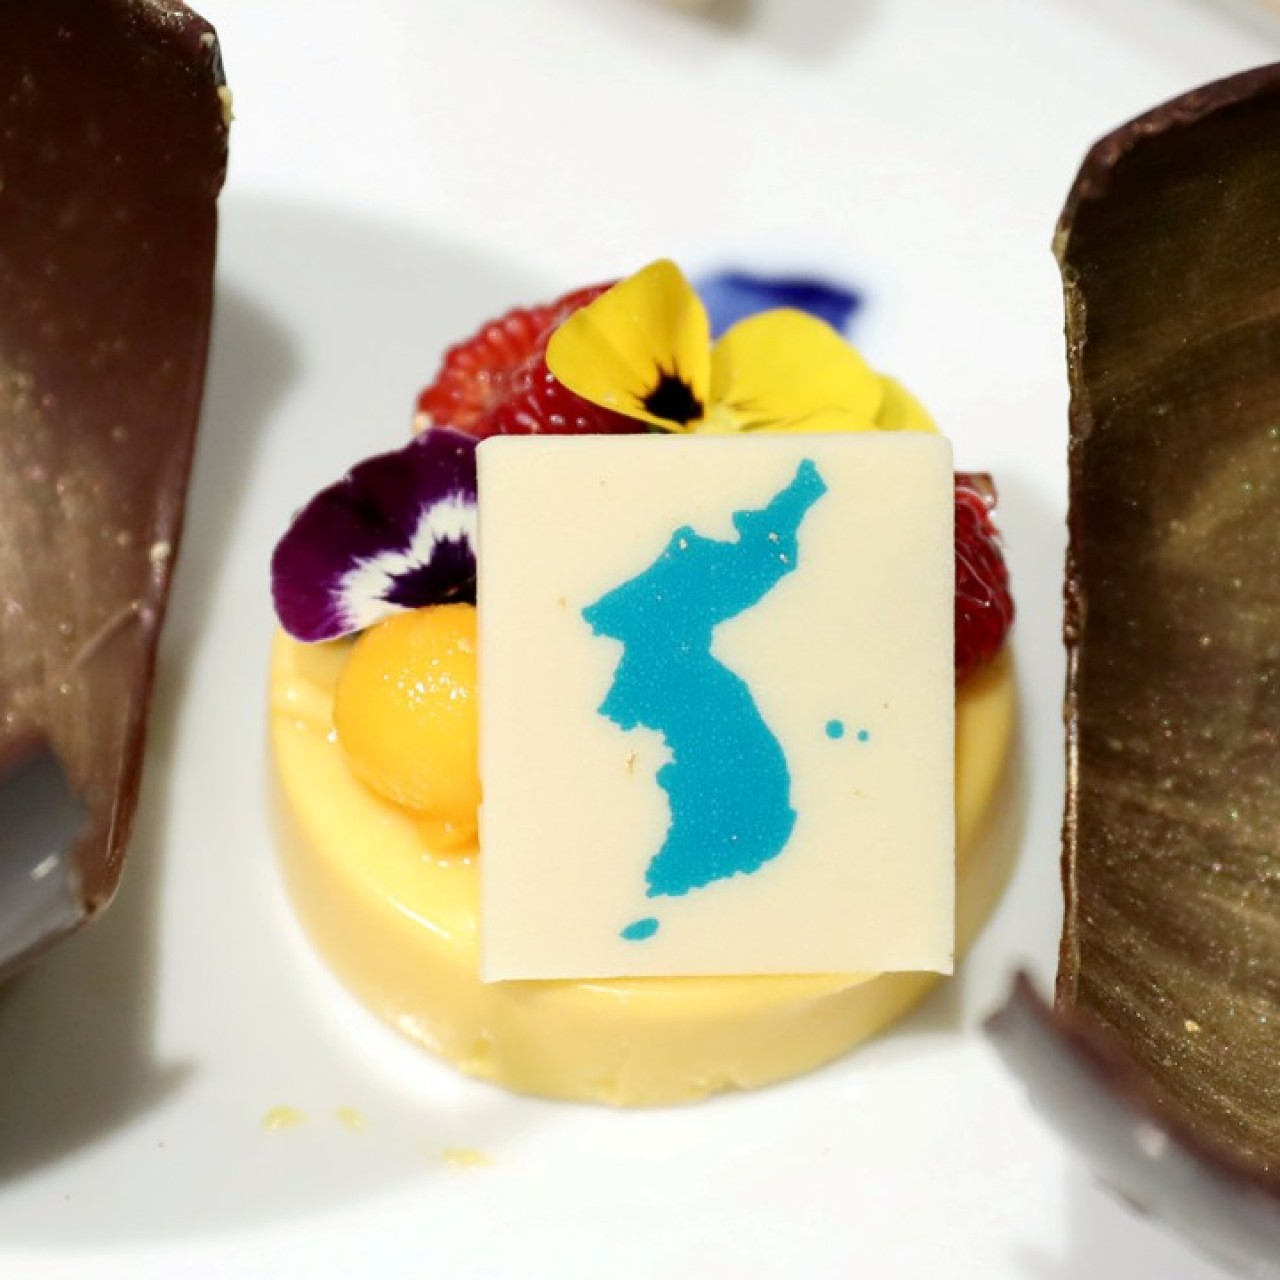 Japan demands Koreas pull dessert from summit menu because